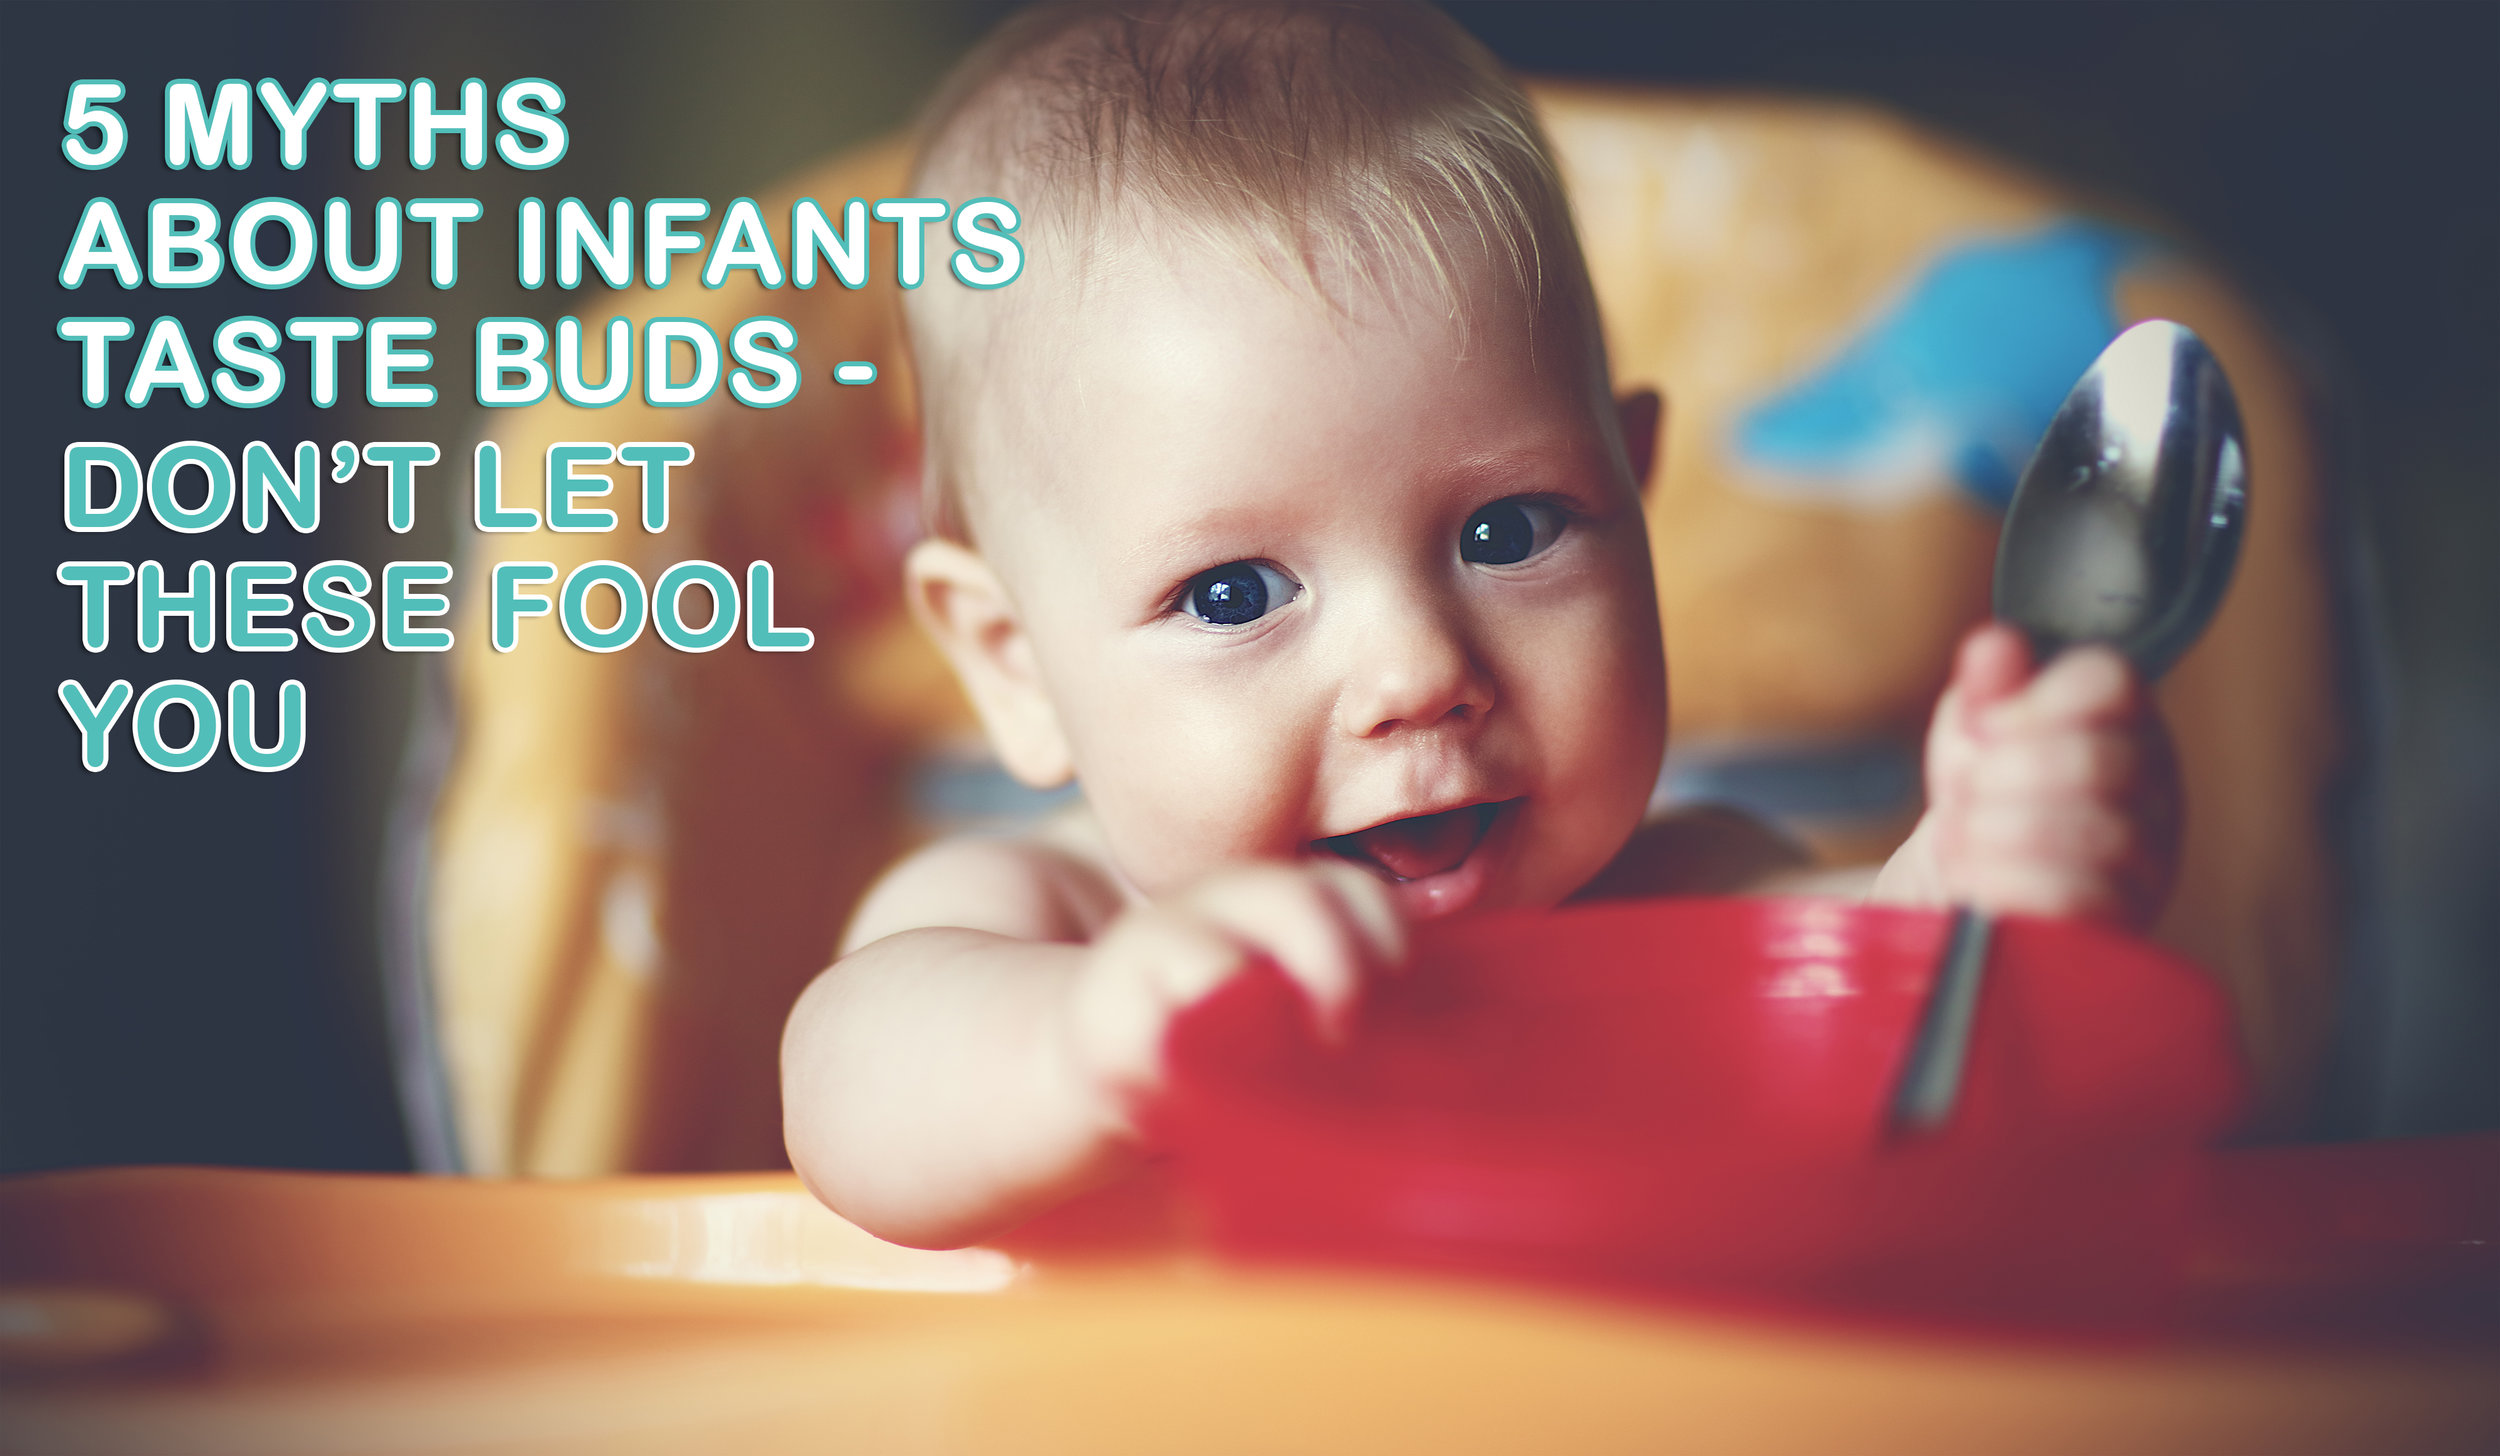 5-myyths-about-infant-taste-buds-dont-let-these-fool-you.jpg